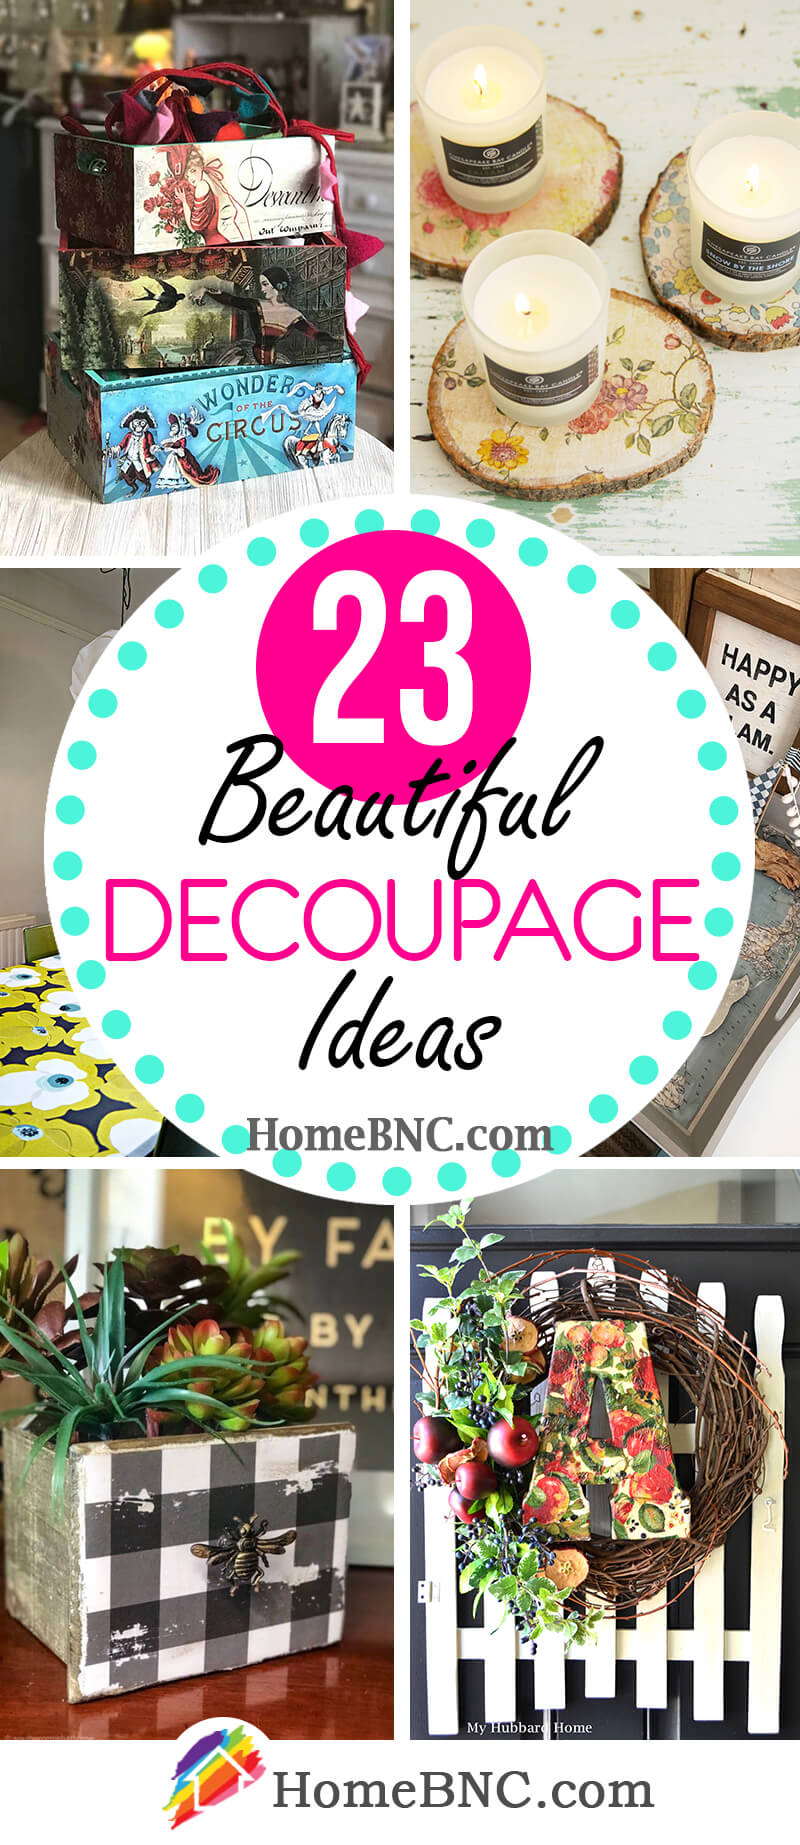 23 Best Decoupage Ideas To Liven Up Your Home Decor In 2021